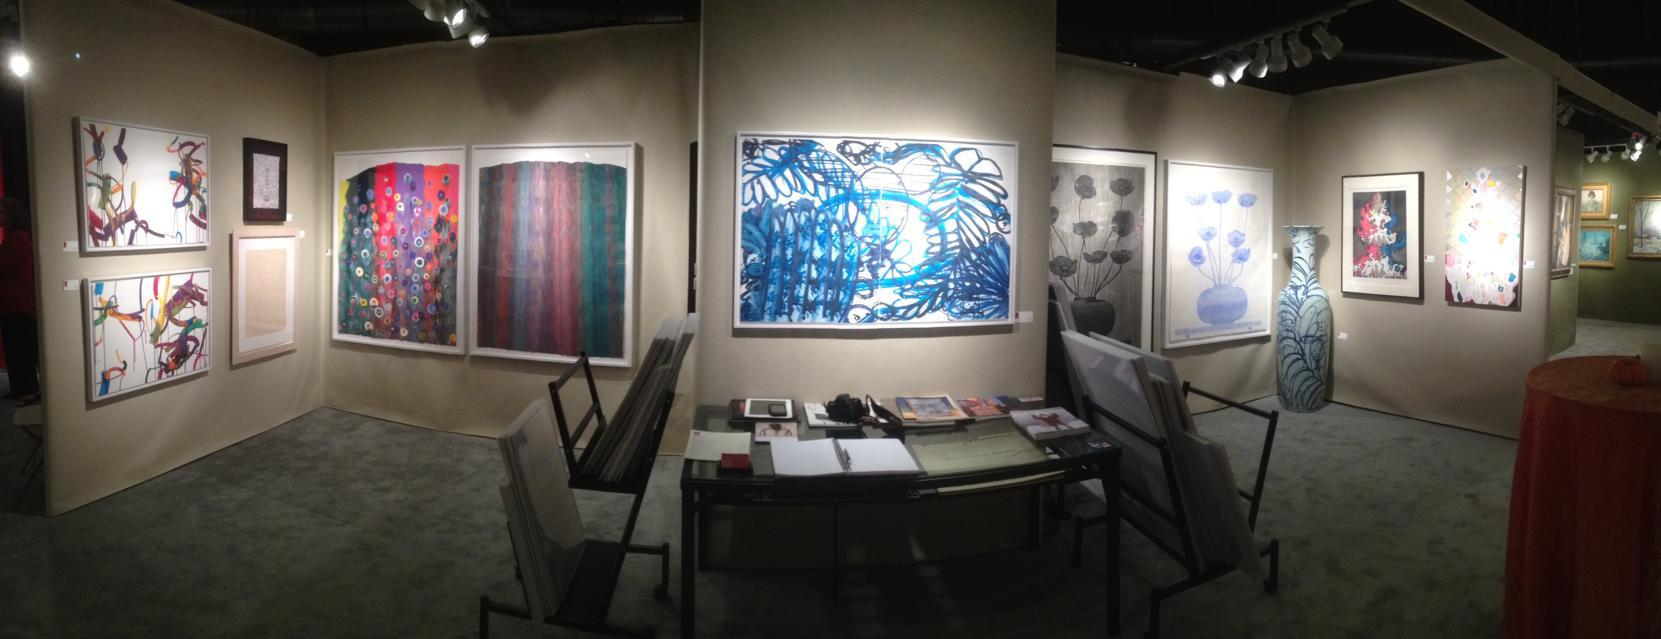 A panoramic photo of Center Street Studio's booth at the Boston International Fine Art Show (BIFAS), November 2013.